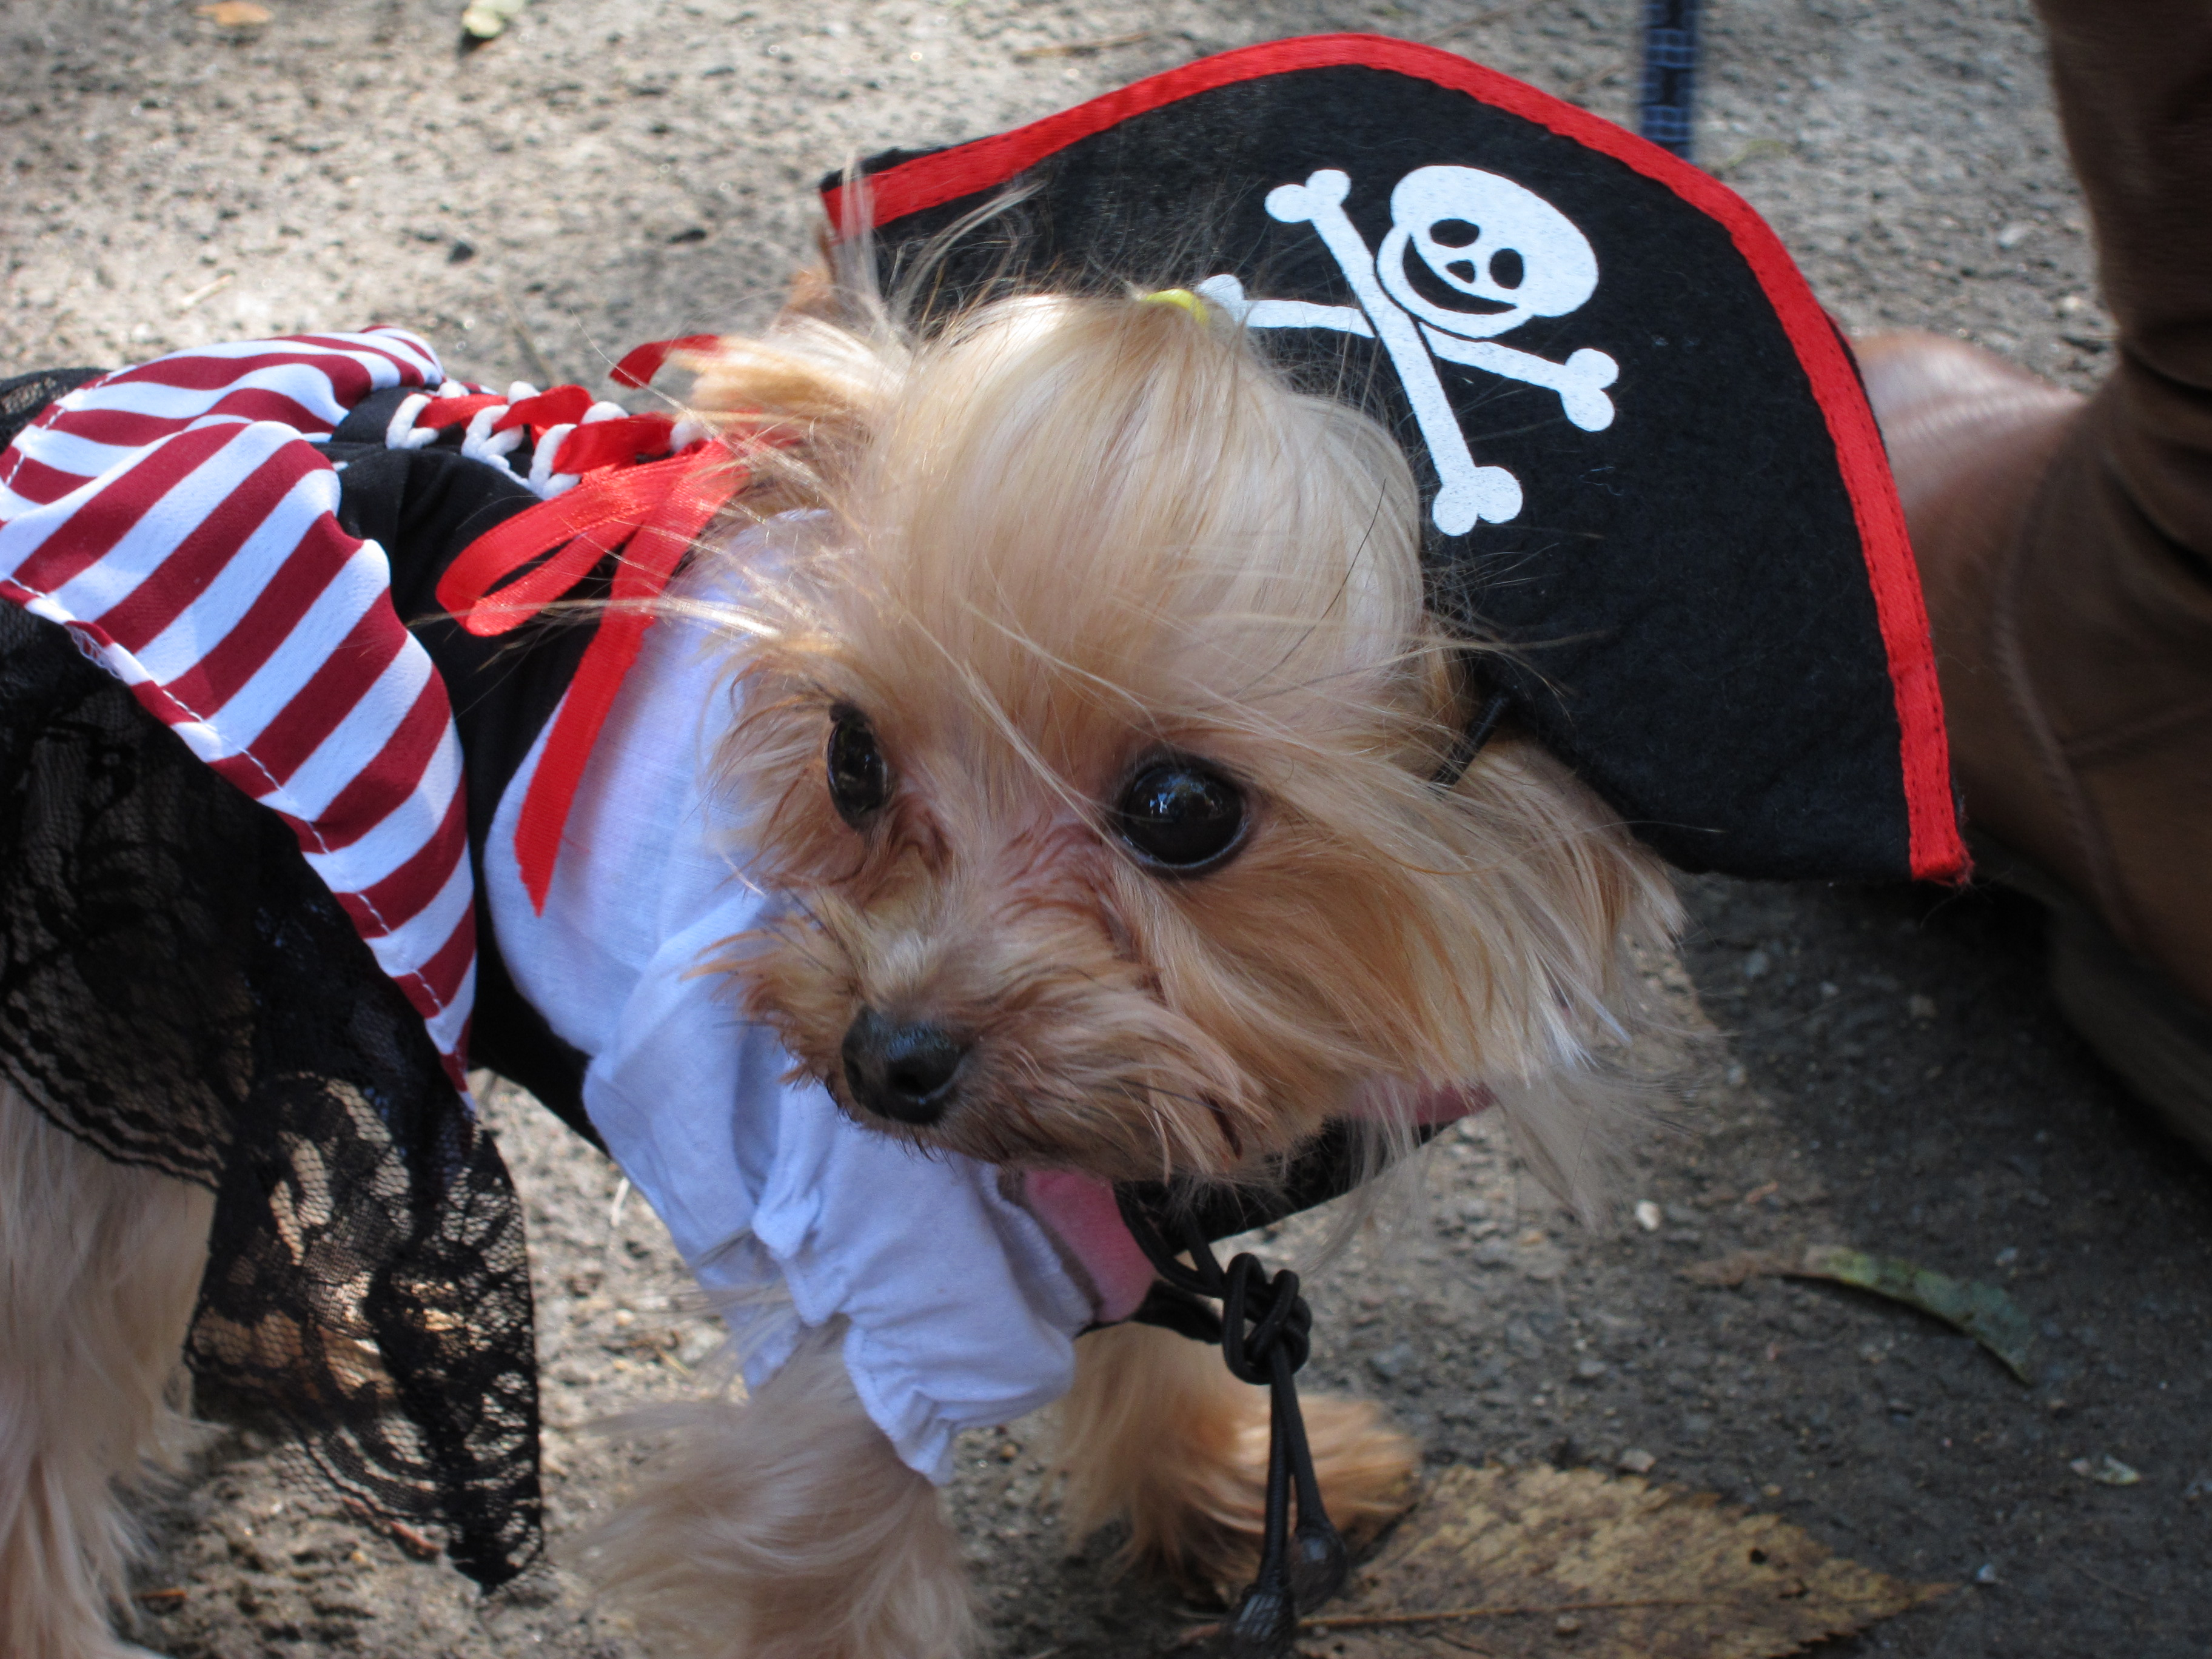 Dog Pirate Costume With Eye Patch